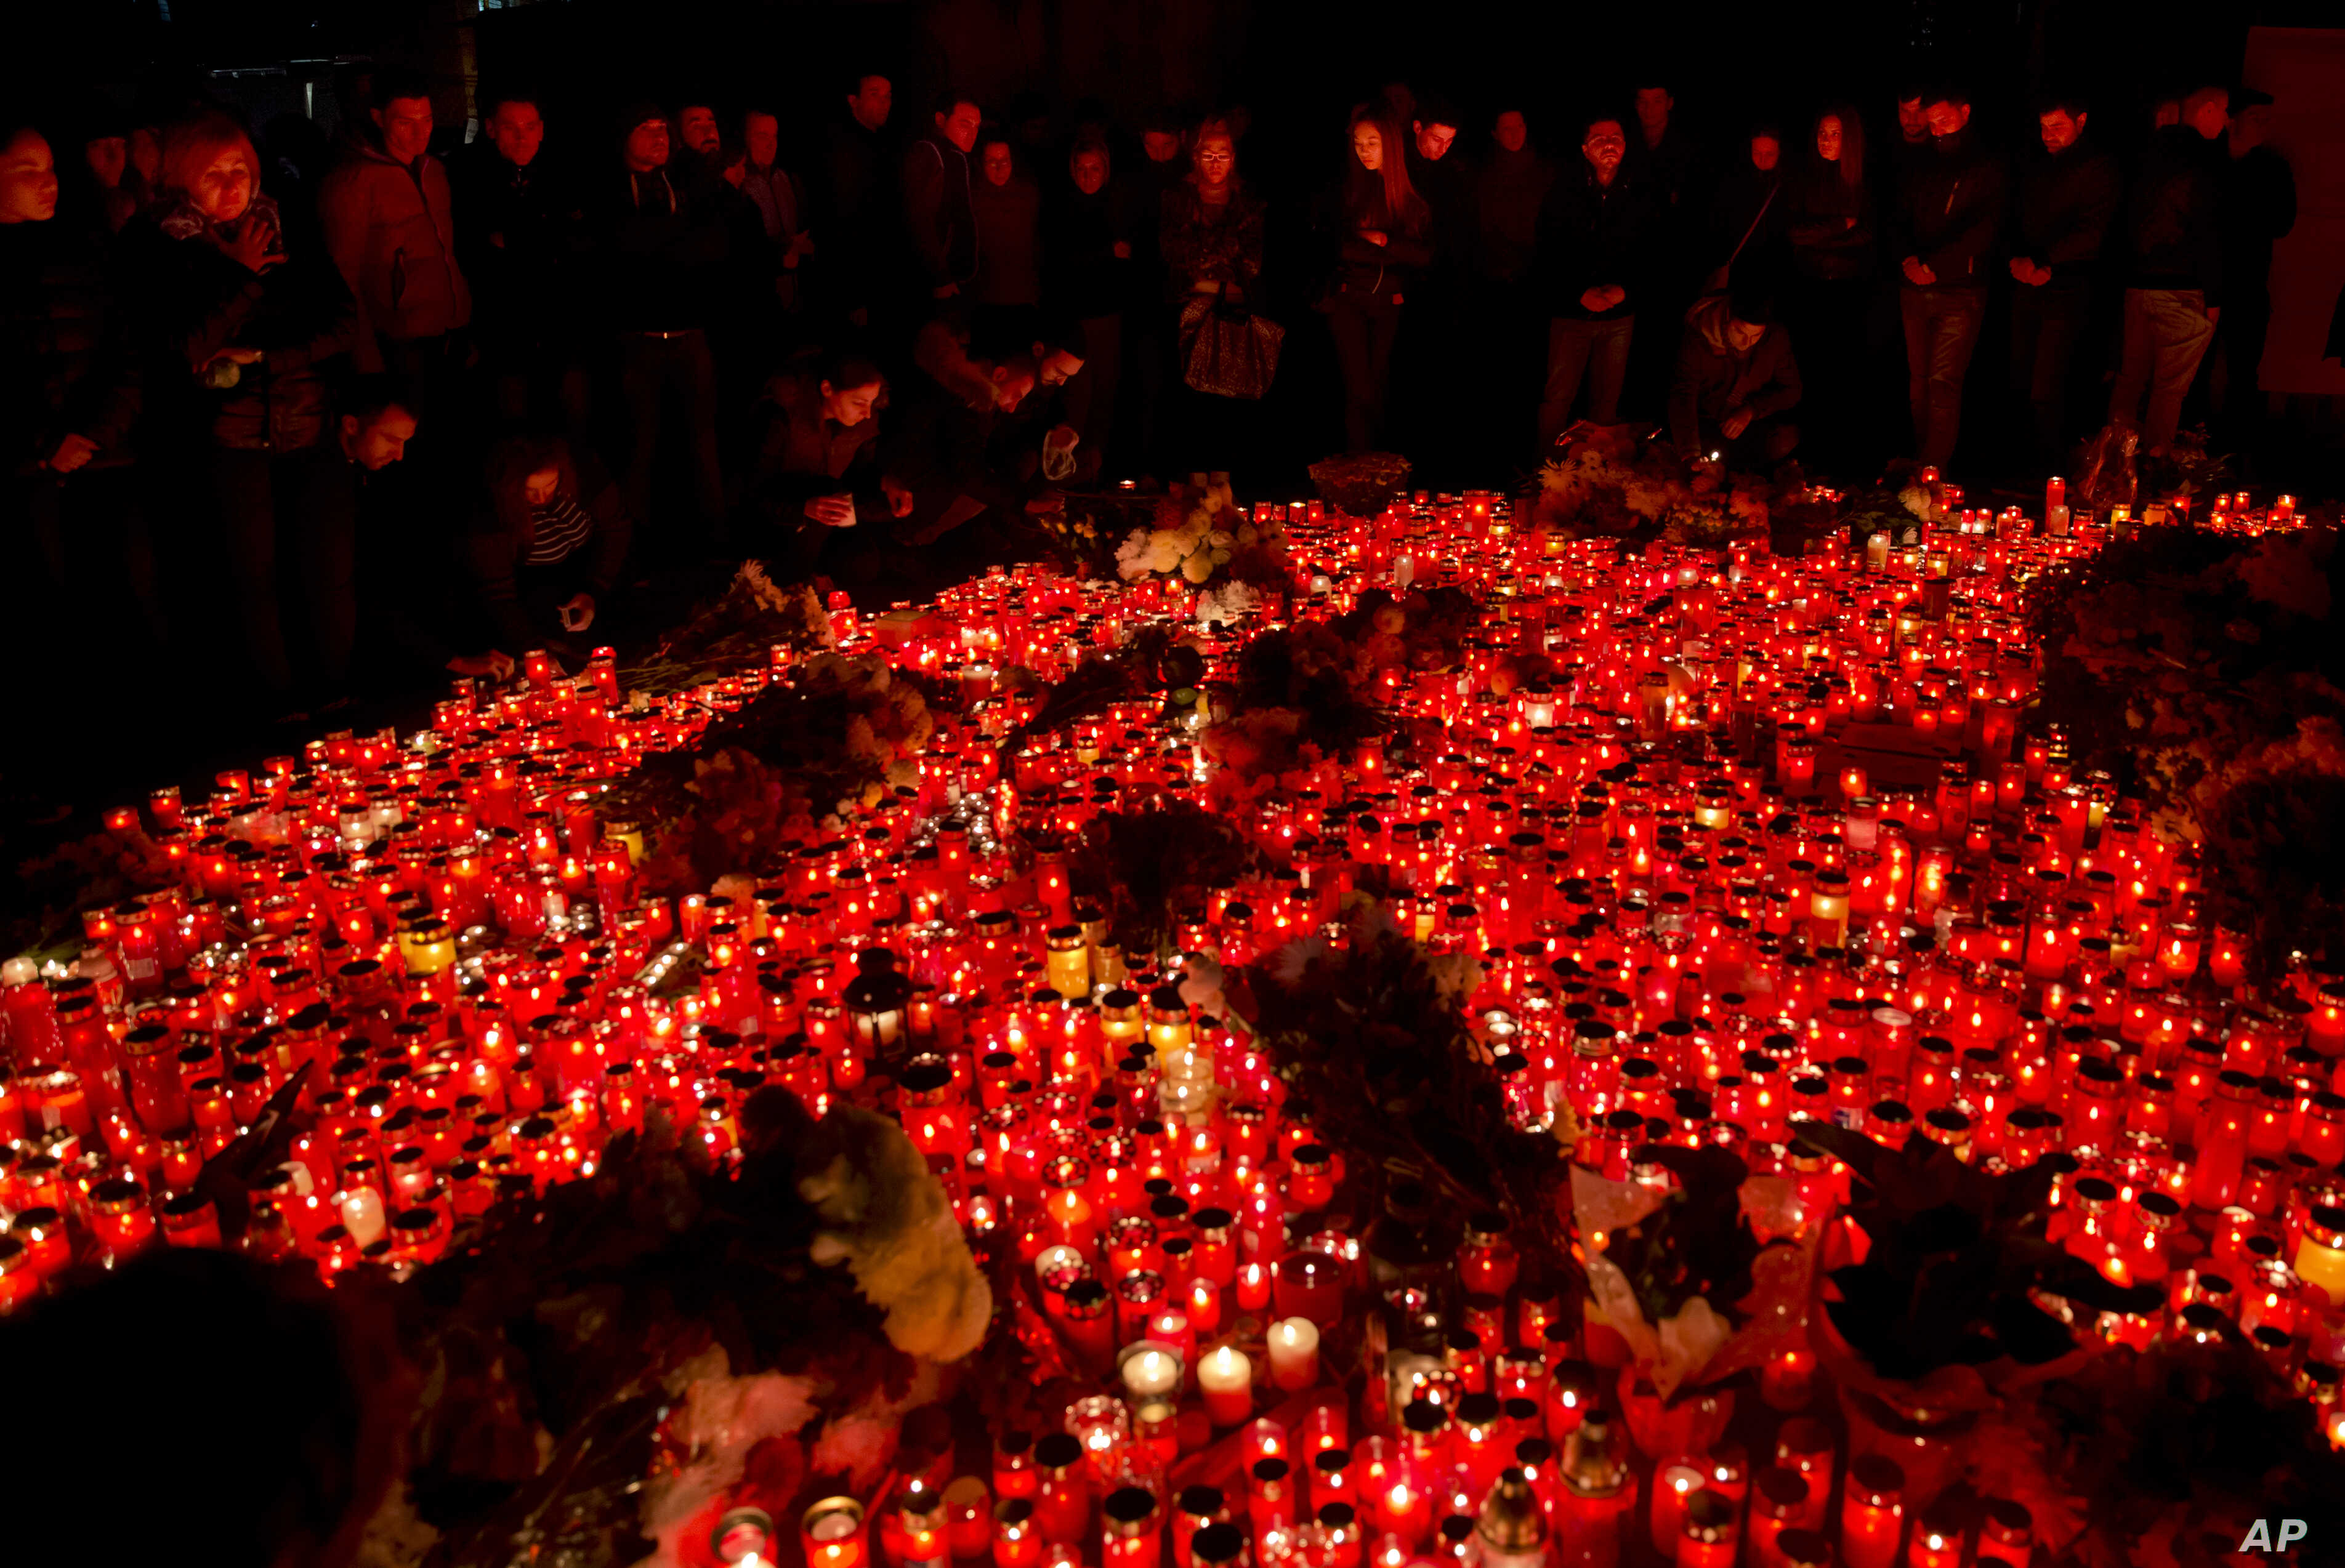 People, lit by burning candles, stand outside the compound that housed a nightclub where a fire occurred in the early Saturday in Bucharest, Romania, to pay respects to the victims, marking 24 hours after the accident, Nov. 1, 2015.